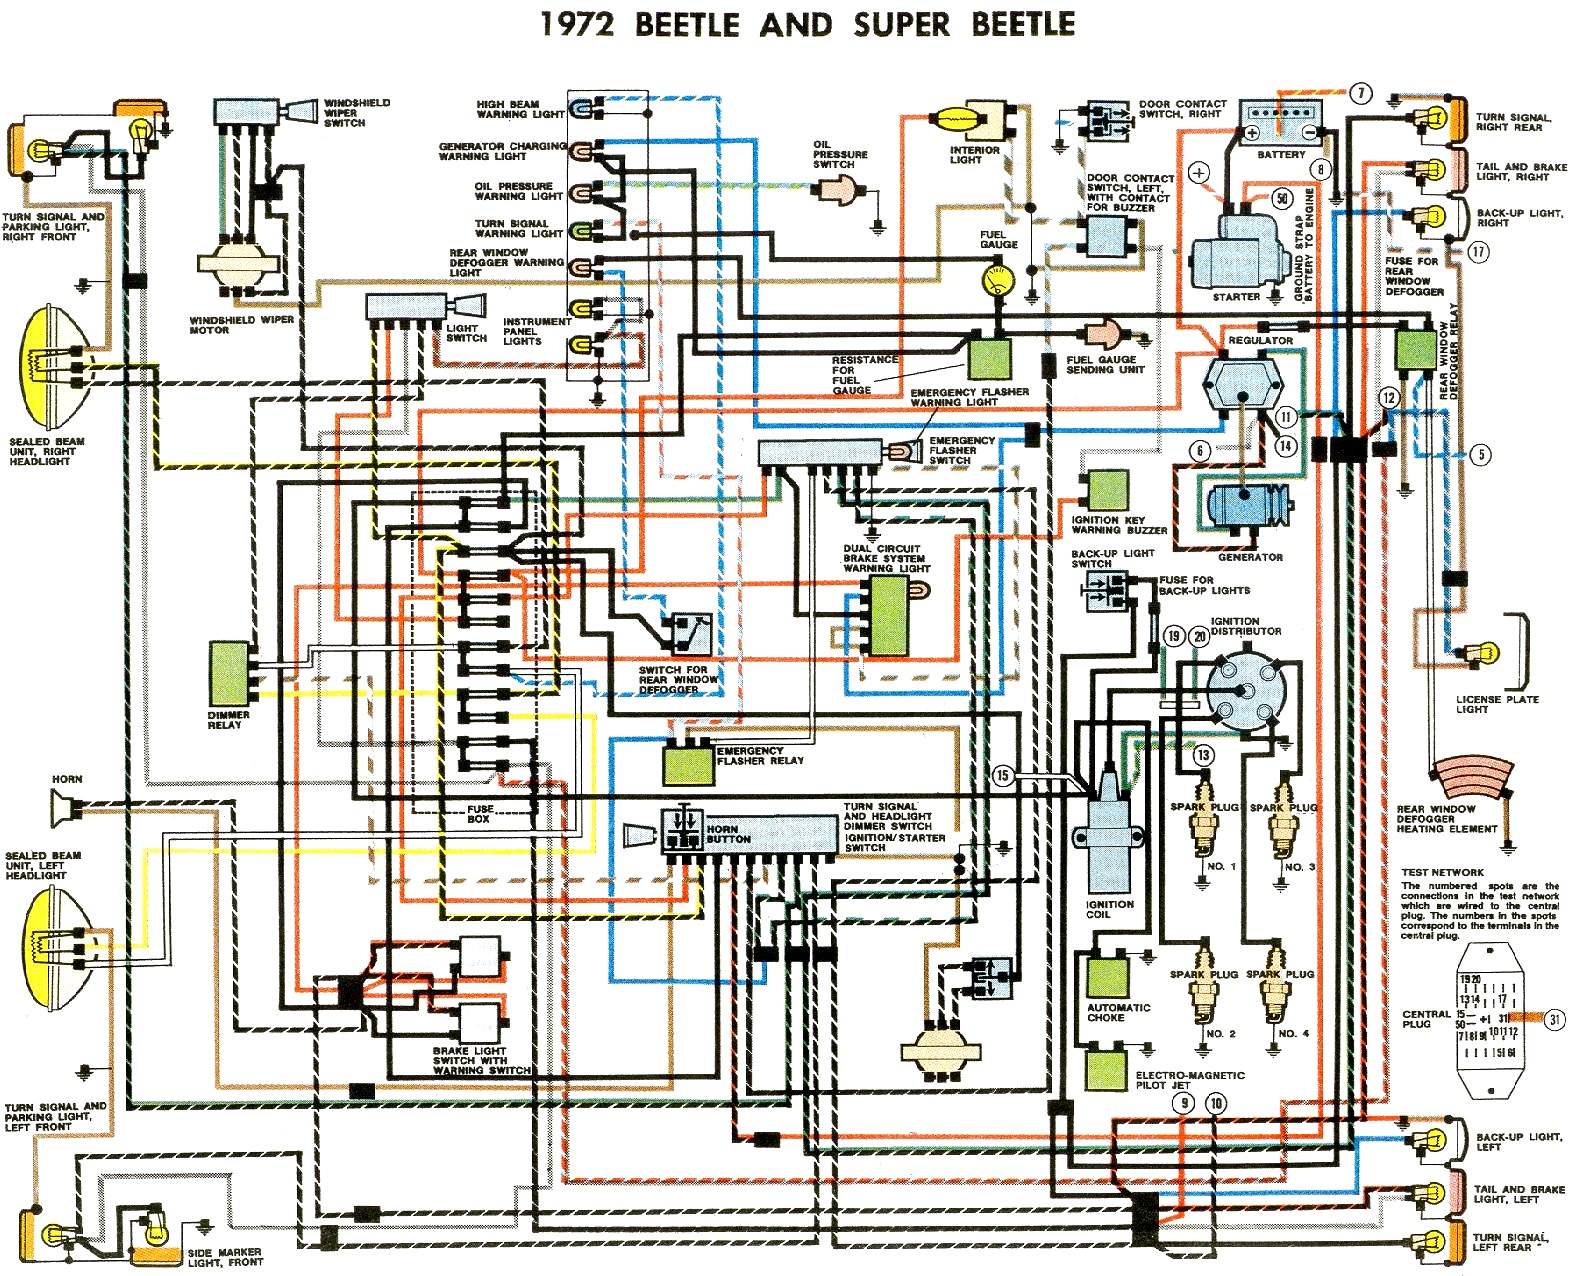 1972 beetle wiring diagram | thegoldenbug.com 2000 volkswagen beetle engine diagram 72 beetle engine diagram